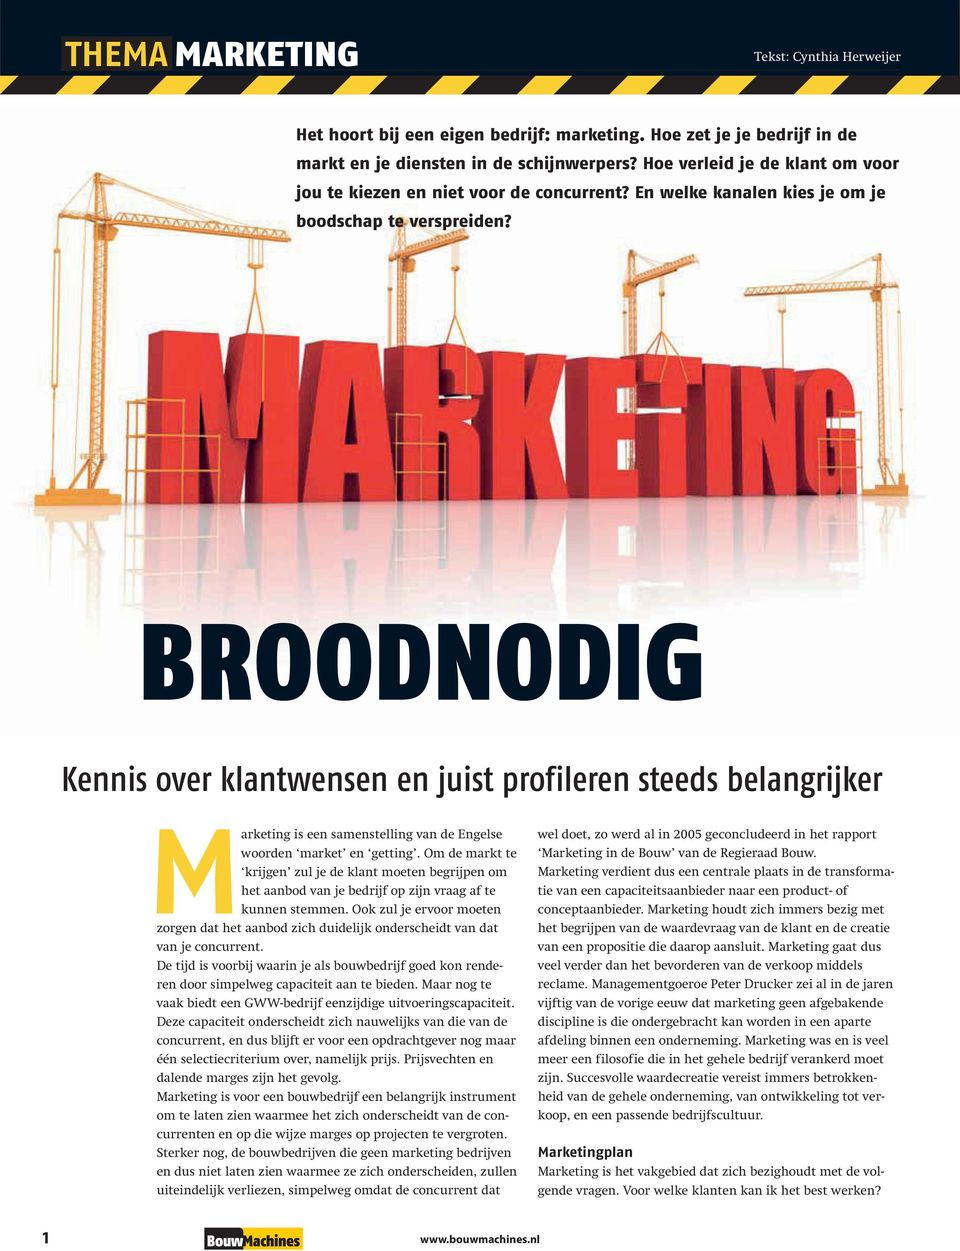 BROODNODIG Kennis over klantwensen en juist profileren steeds belangrijker Marketing is een samenstelling van de Engelse woorden market en getting.